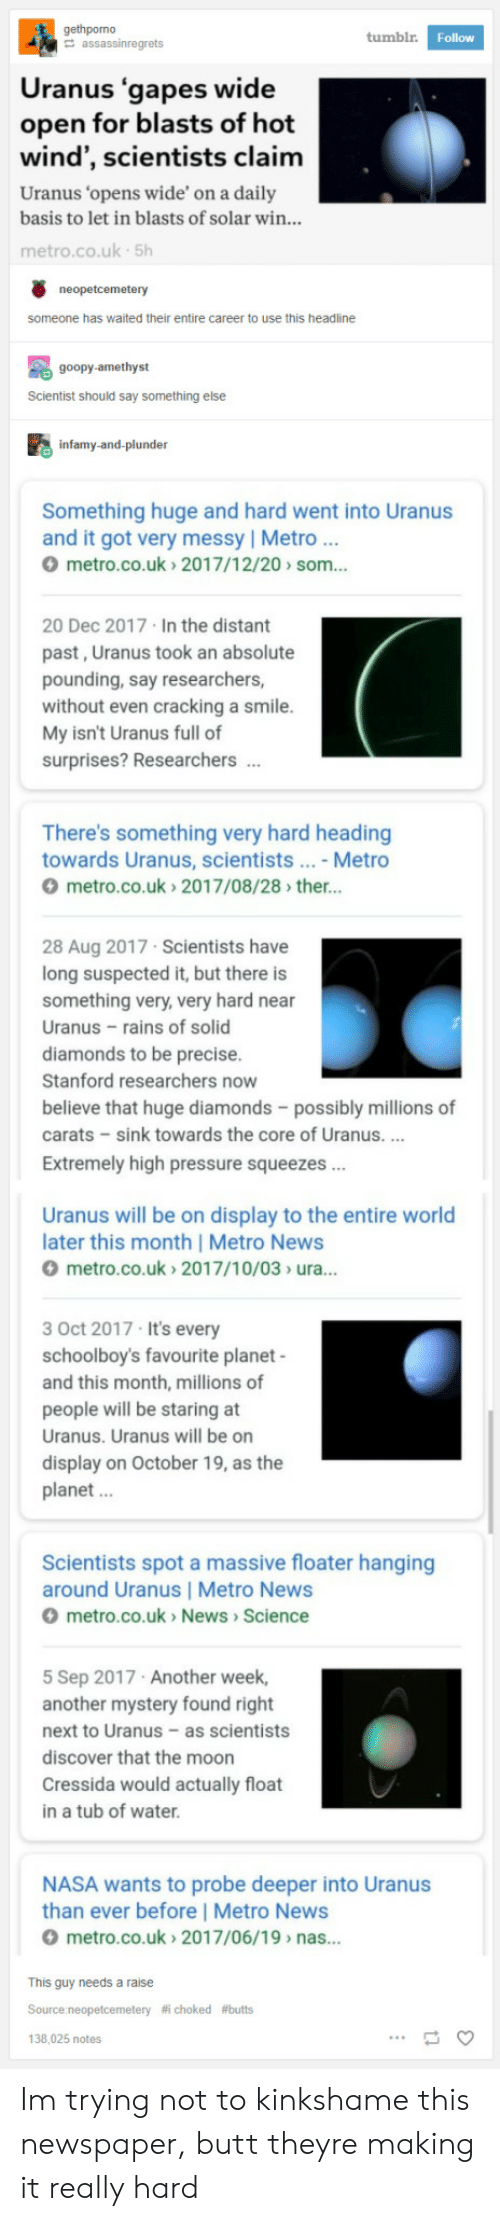 squeezes: gethporno  tumbl.  Follow  Uranus 'gapes wide  open for blasts of hot  wind , scientists claimm  Uranus 'opens wide' on a daily  basis to let in blasts of solar win..  metro.co.uk 5h  someone has waited their entire career to use this headline  goopy-amethyst  Scientist should say something else  鼩infamy-and-plunder  Something huge and hard went into Uranus  and it got very messy | Metro..  metro.co.uk 2017/12/20> som...  20 Dec 2017 In the distant  past, Uranus took an absolute  pounding, say researchers,  without even cracking a smile  My isn't Uranus full of  surprises? Researchers.  There's something very hard heading  towards Uranus, scientists... - Metro  metro.co.uk>2017/08/28> ther...  28 Aug 2017 Scientists have  long suspected it, but there is  something very, very hard near  Uranus rains of solid  diamonds to be precise.  Stanford researchers now  believe that huge diamonds - possibly millions of  carats - sink towards the core of Uranus.  Extremely high pressure squeezes  Uranus will be on display to the entire world  later this month | Metro News  metro.co.uk> 2017/10/03> ura...  3 Oct 2017 It's every  schoolboy's favourite planet  and this month, millions of  people will be staring at  Uranus. Uranus will be on  display on October 19, as the  planet  Scientists spot a massive floater hanging  around Uranus | Metro News  metro.co.uk News> Science  5 Sep 2017 Another week,  another mystery found right  next to Uranus-as scientists  discover that the moon  Cressida would actually float  in a tub of water  NASA wants to probe deeper into Uranus  than ever before | Metro News  metro.co.uk 2017/06/19> nas...  This guy needs a raise  Source:neopetcemetery  138,025 notes  choked  Im trying not to kinkshame this newspaper, butt theyre making it really hard